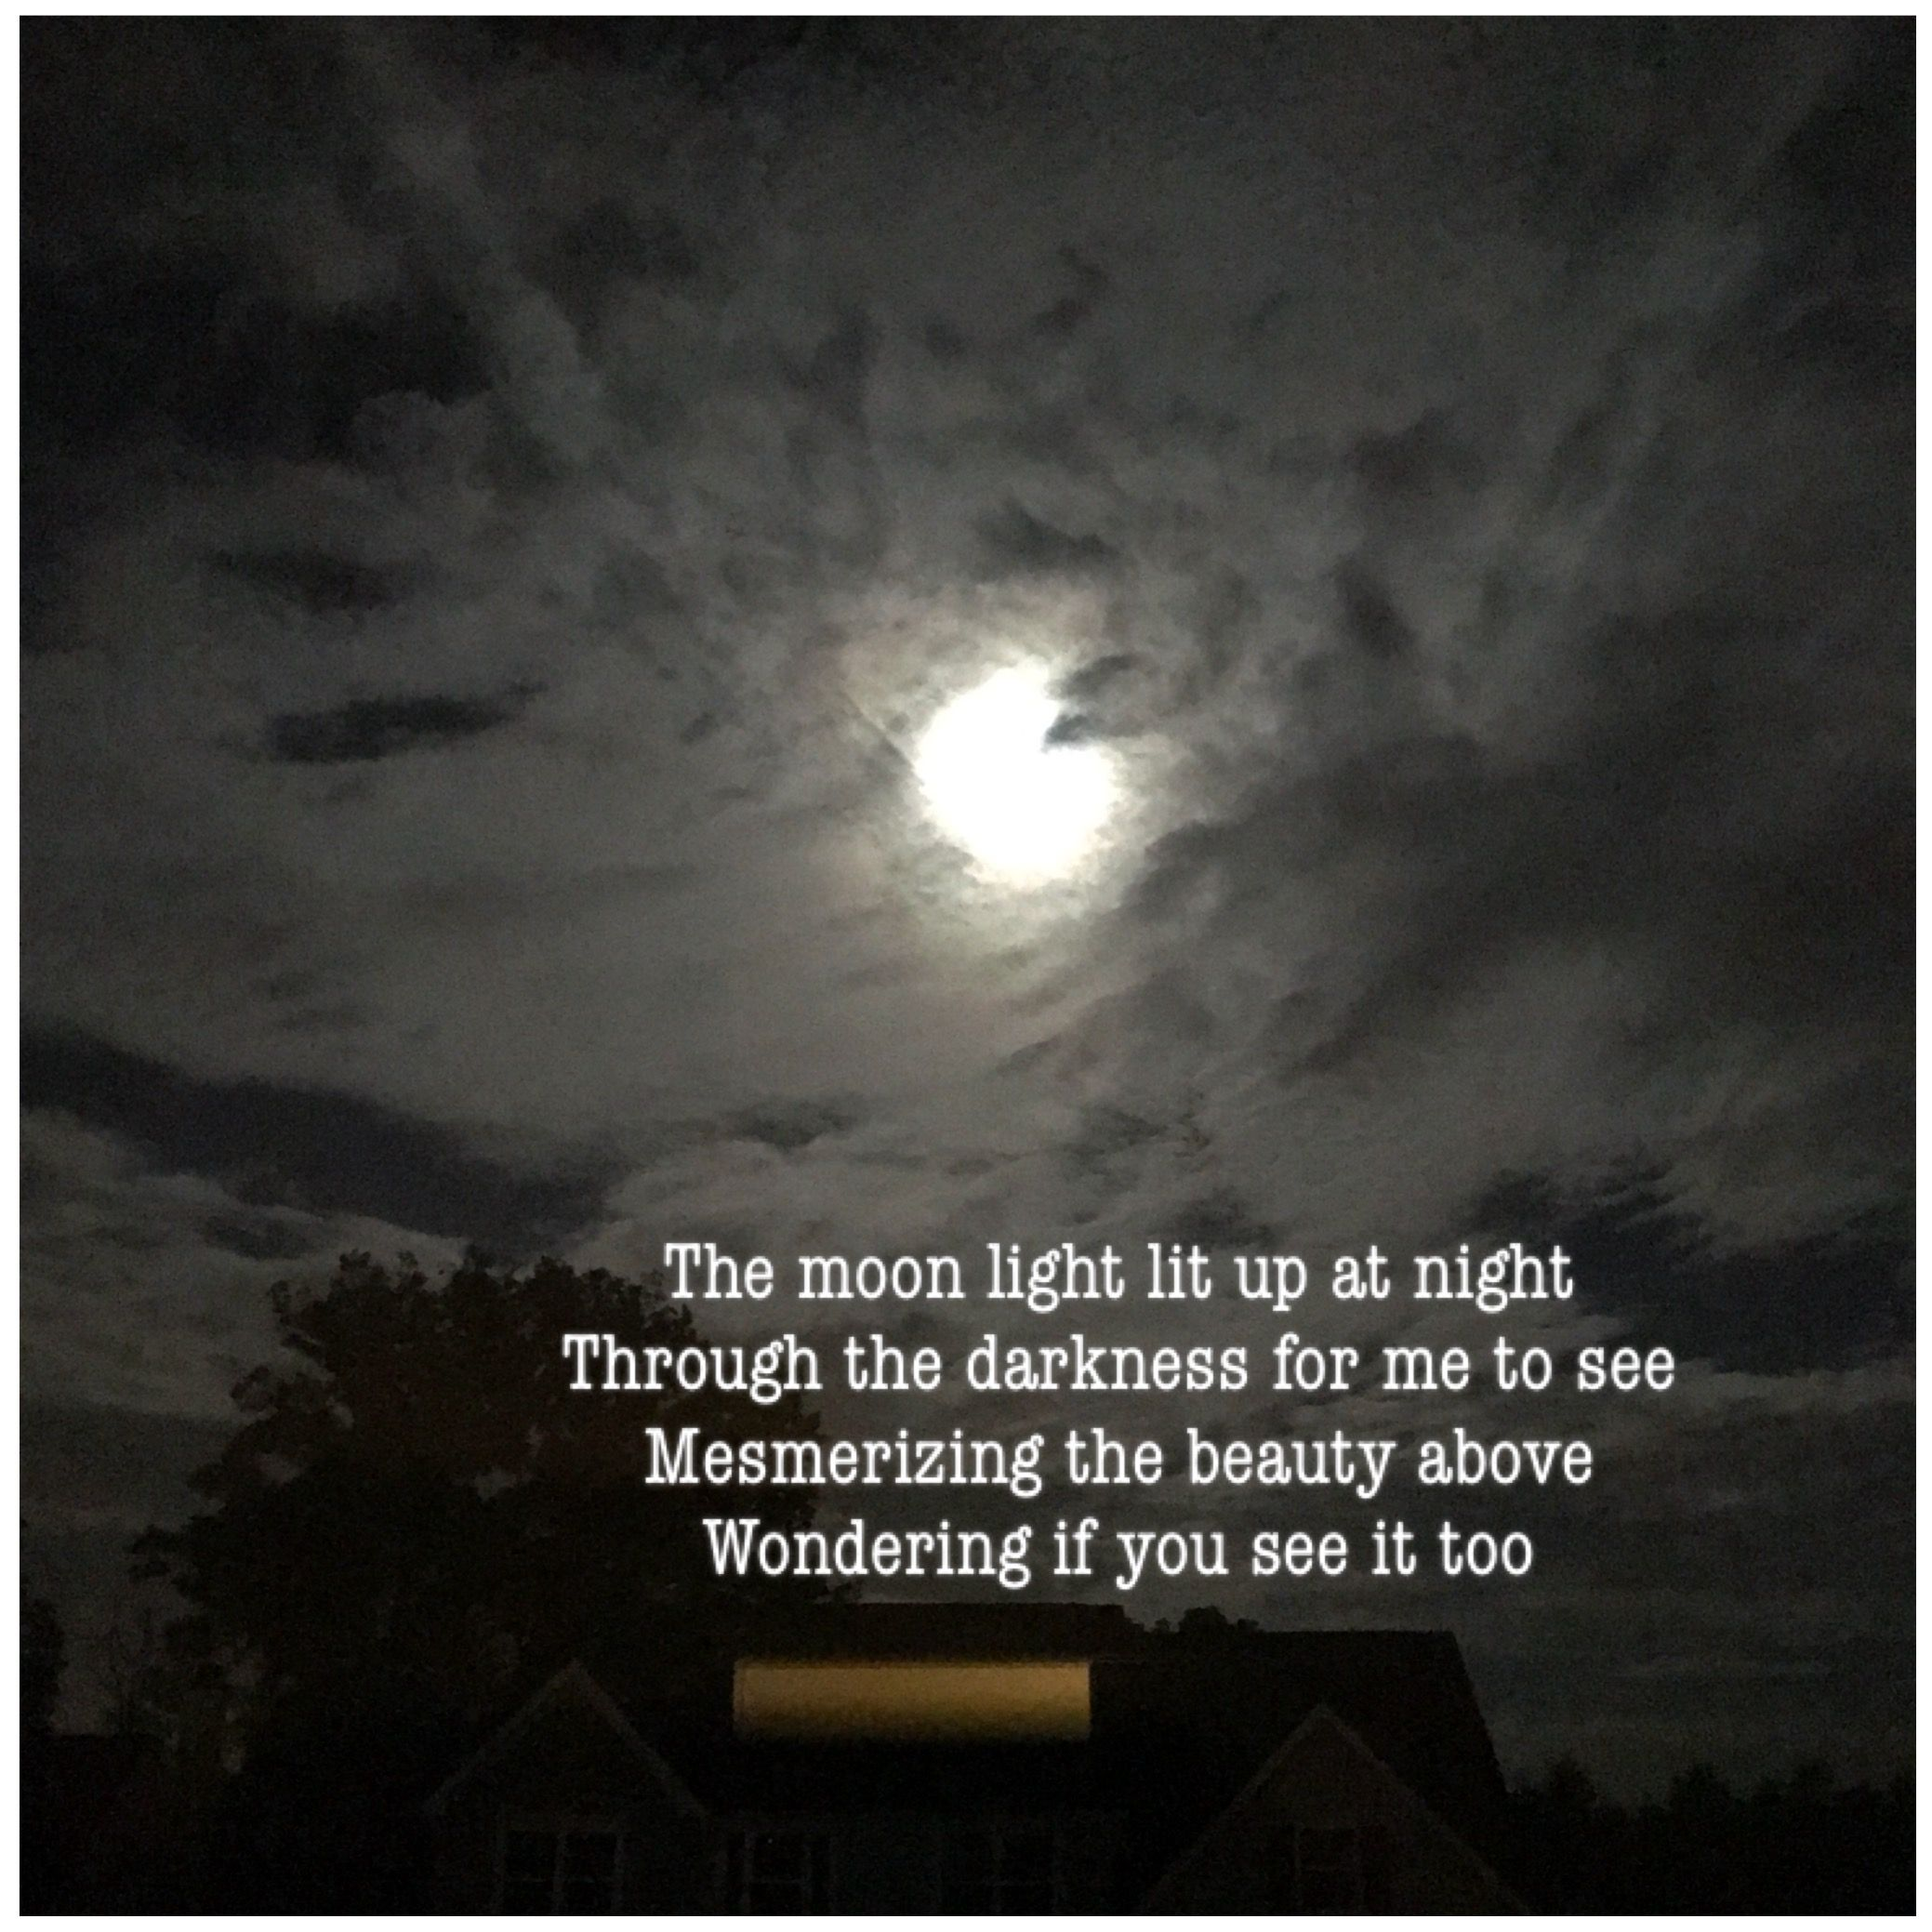 The Moon Light Lit Up At Night Through The Darkness For Me To See Mesmerizing The Beauty Above Wondering If You See It Too Moonlight Light Up Wonder